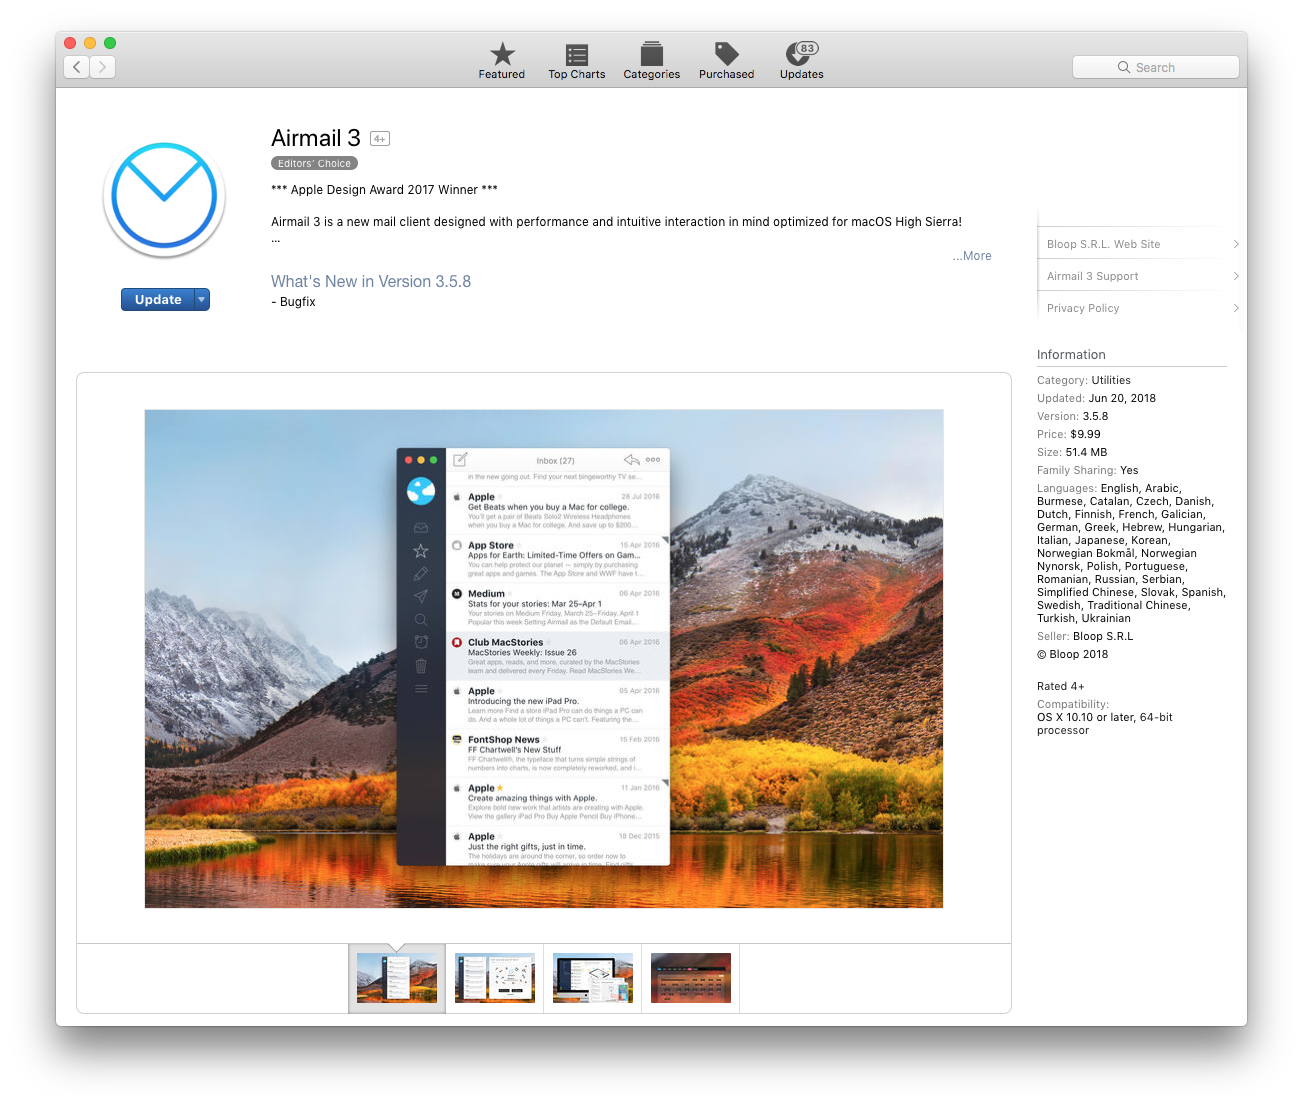 Airmail Lightning Fast Mail Client For Mac And Iphone Mooi Printing Premium Sweater Top Garden Bunny M Apple The Logo Macbook Pro Imac Are Trademarks Of Inc Registered In Us Other Countries App Store Is A Service Mark